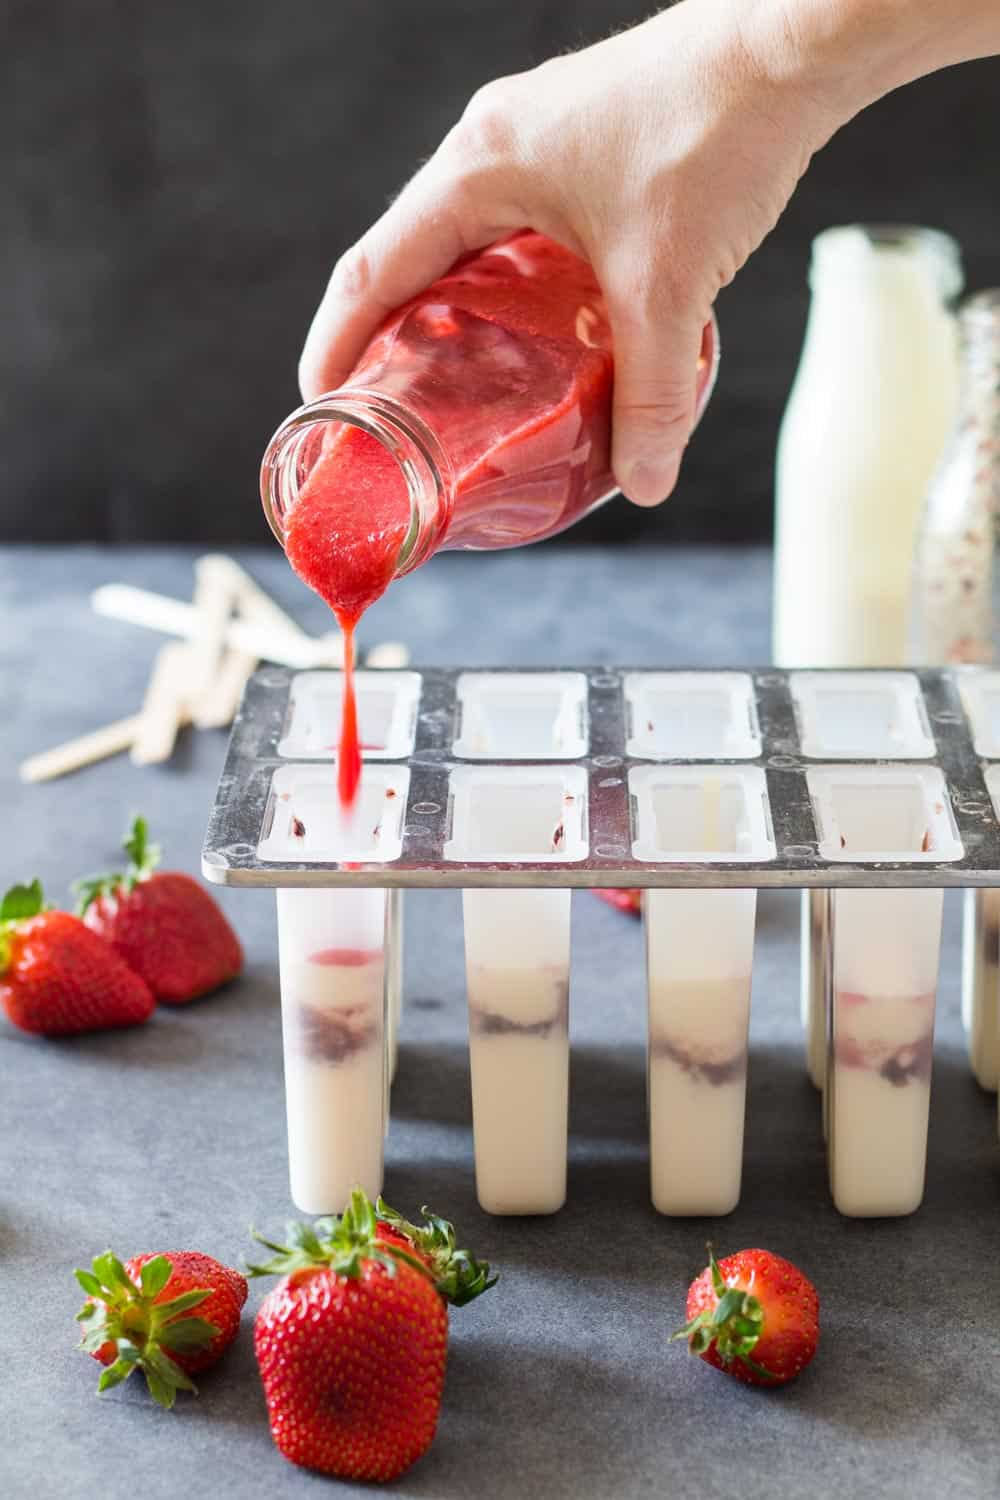 Hand pouring strawberry mix into popsicle molds containing greek yogurt and blueberry mix.